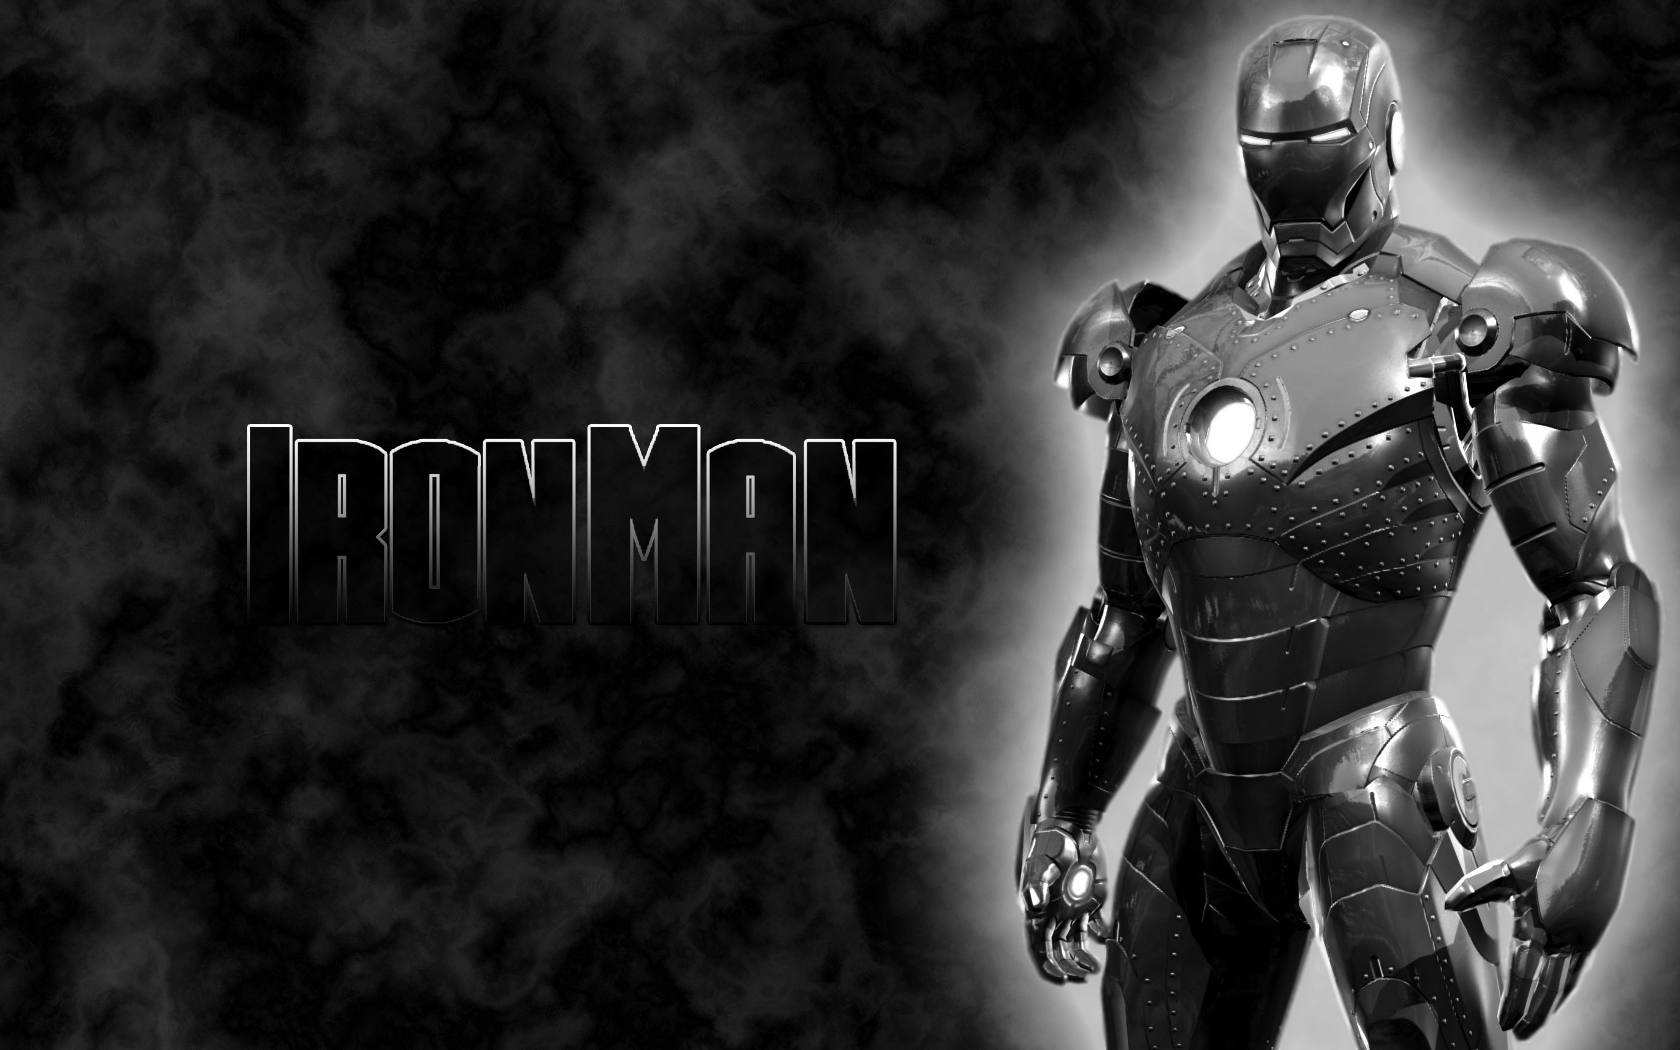 iron man mark II dark by jambel 1680x1050